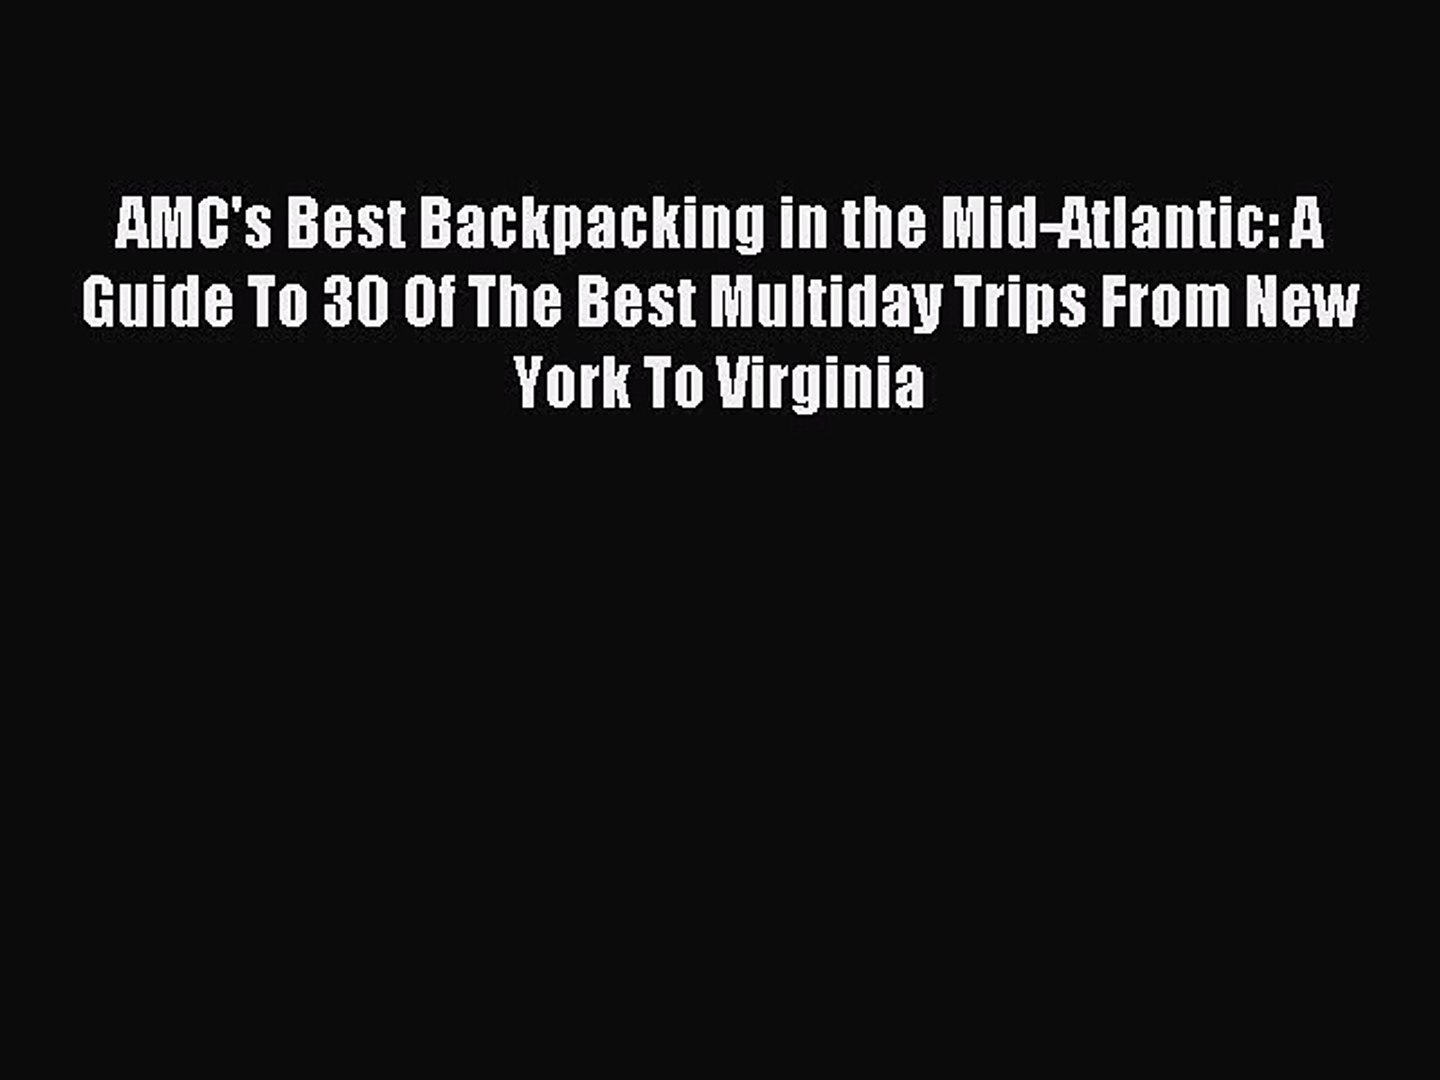 Read AMC's Best Backpacking in the Mid-Atlantic: A Guide To 30 Of The Best Multiday Trips From